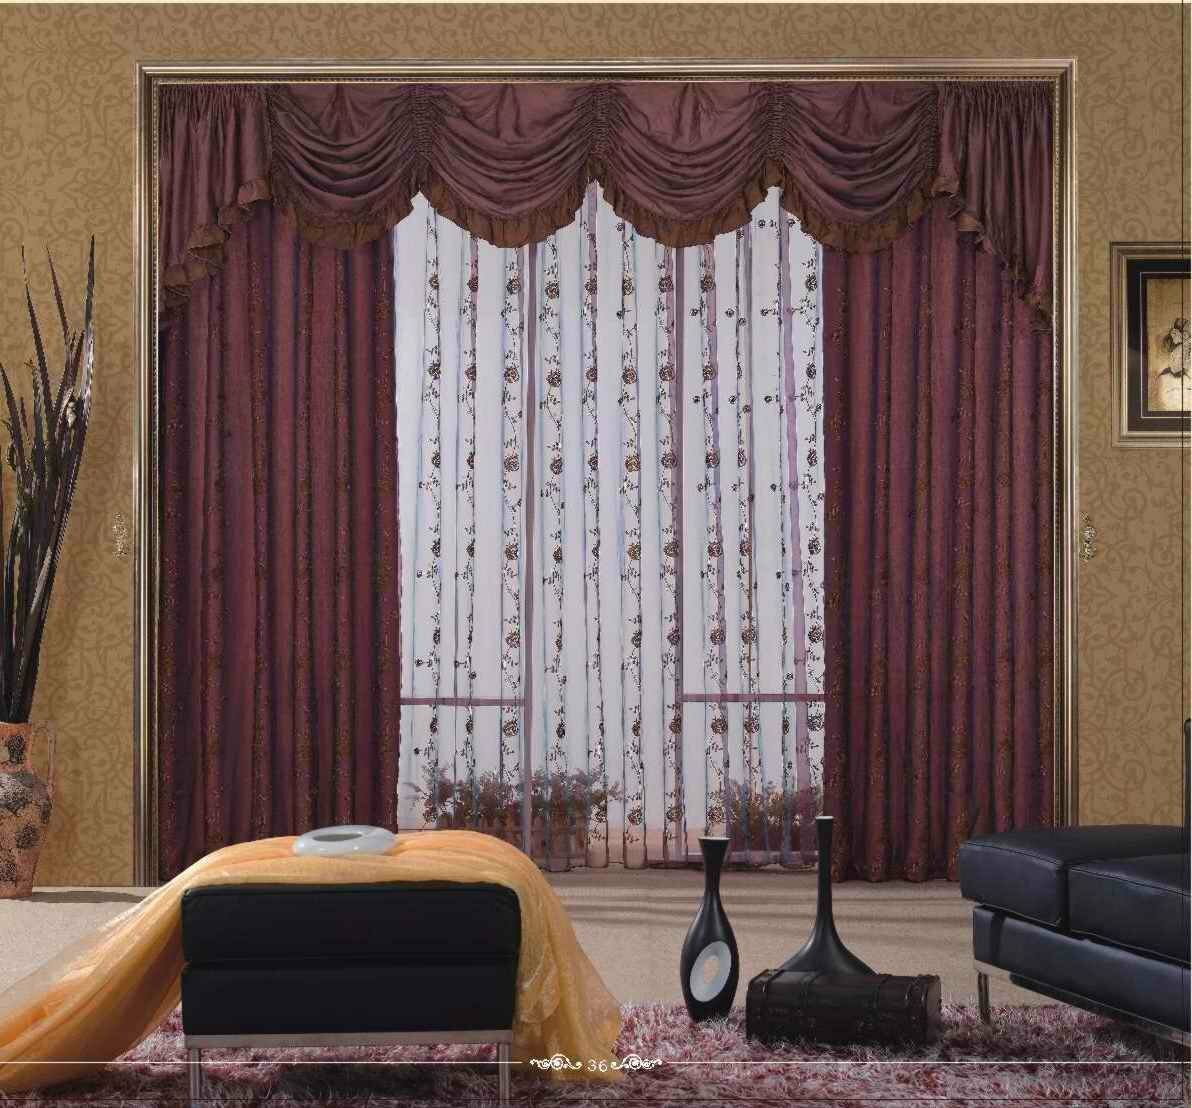 Living Room Valance Curtains Home Decorating Interior Design